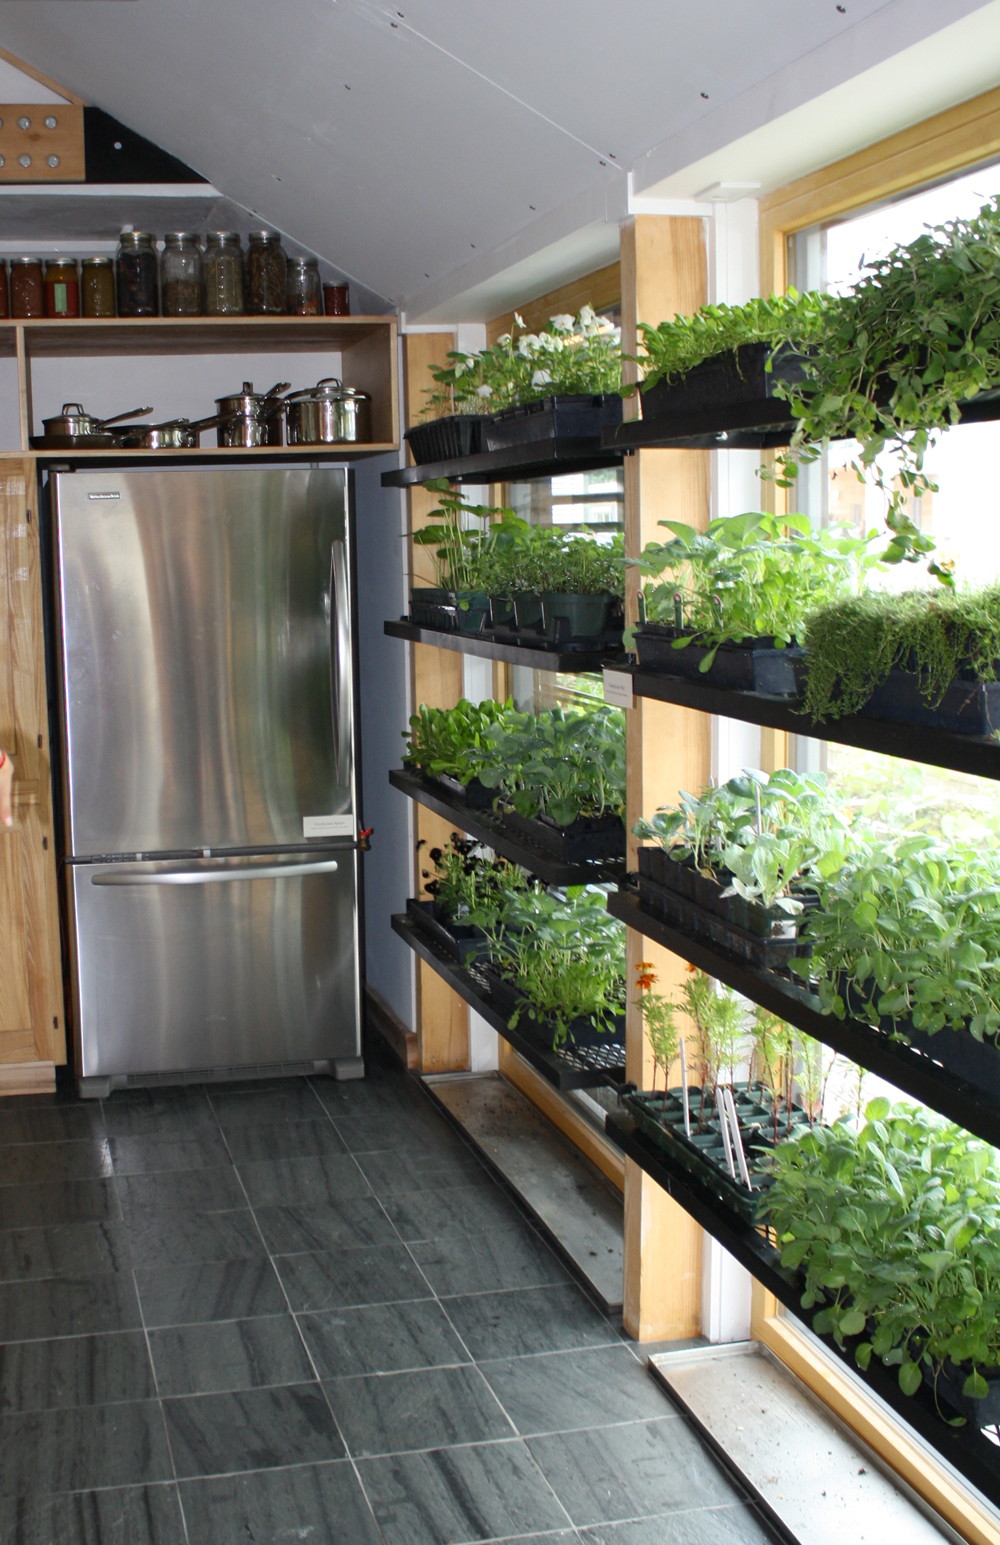 Truexcullins blog solar decathlon review day 2 products for Kitchen garden decoration